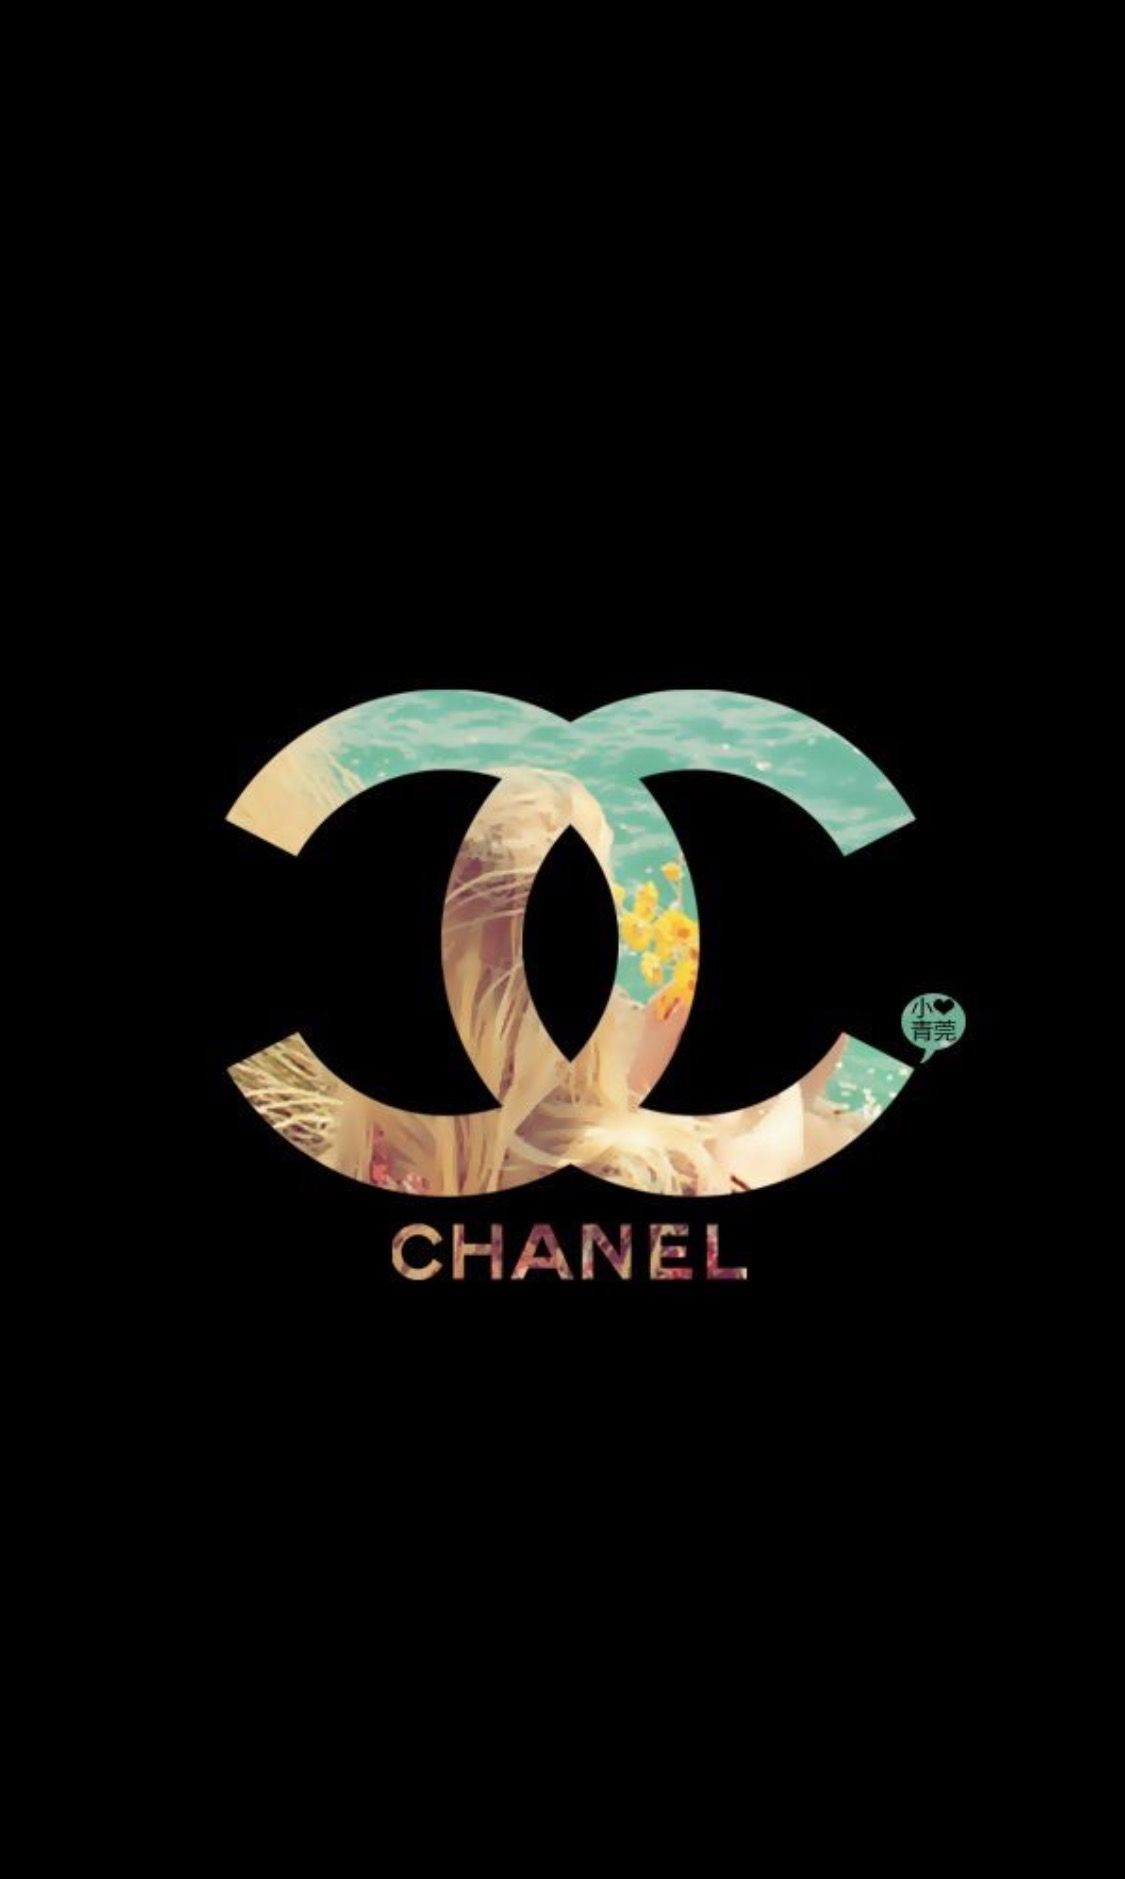 Chanel me pinterest wallpaper fashion illustrations and wallpapers for iphone 5 find a wallpaper background or lock screen for your voltagebd Choice Image